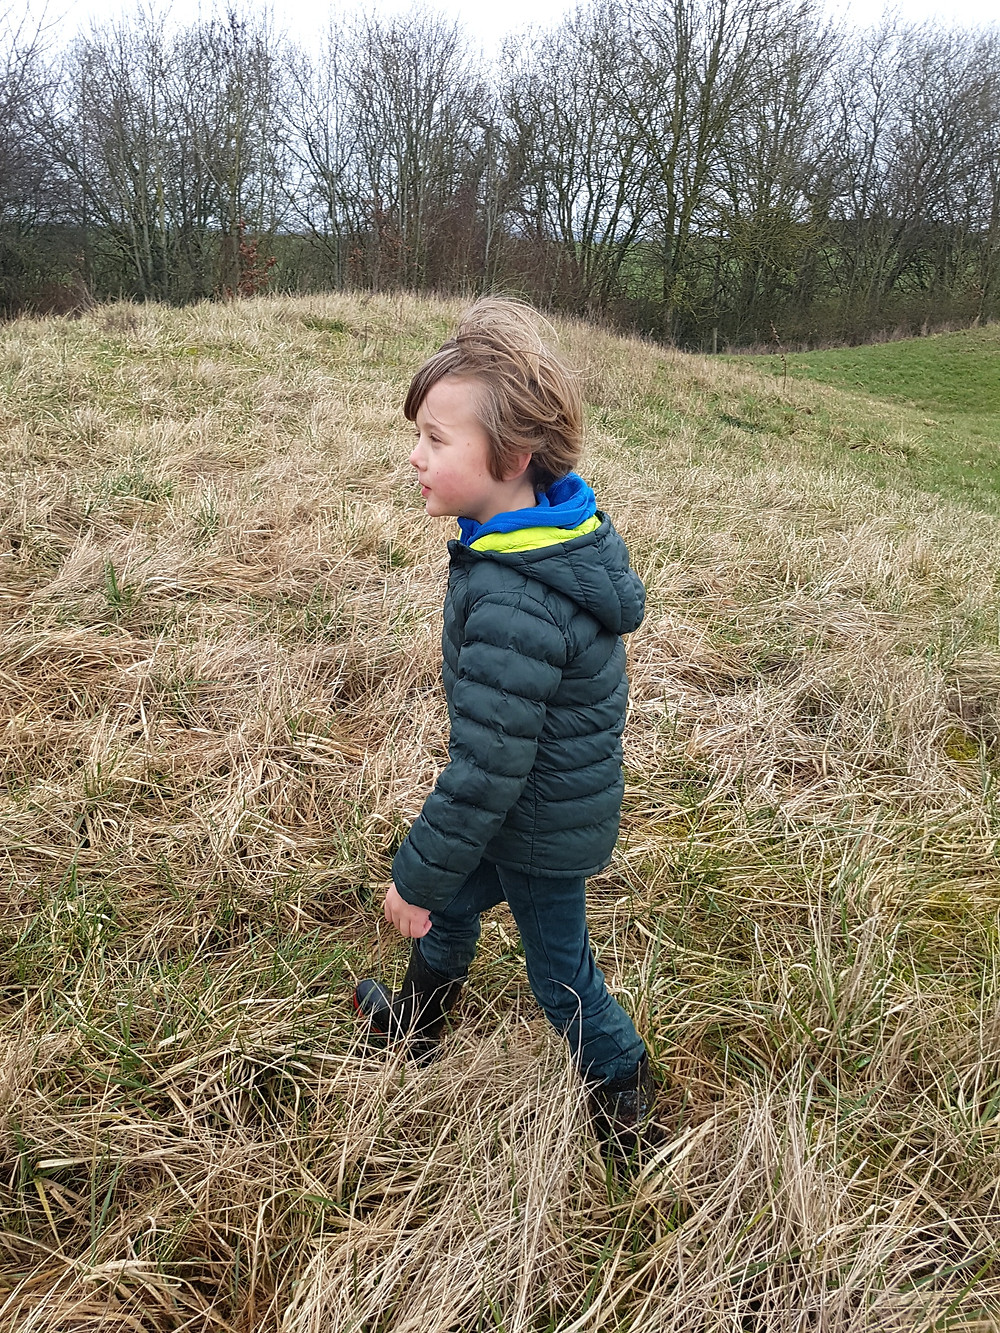 Walking through long grass, Going on a sound hunt, sensory play for kids